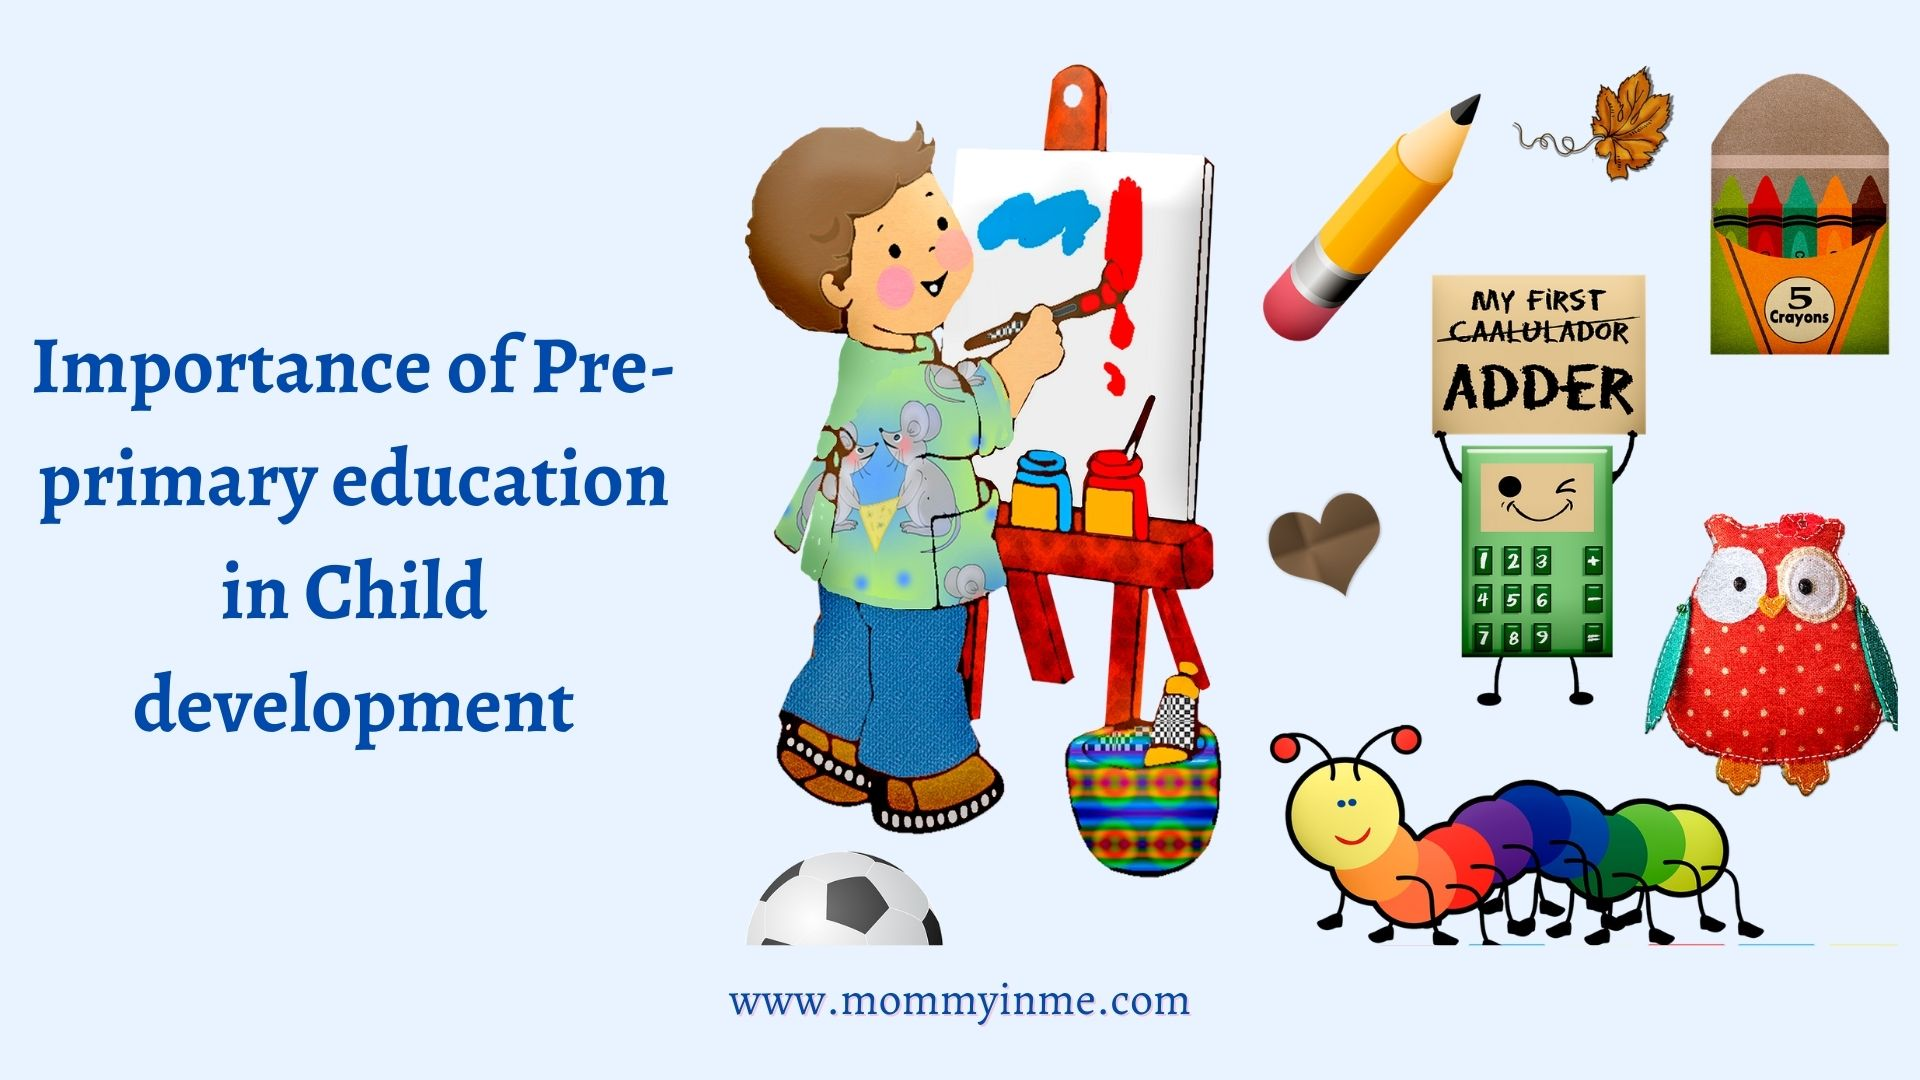 Importance of Pre-primary education in Child development